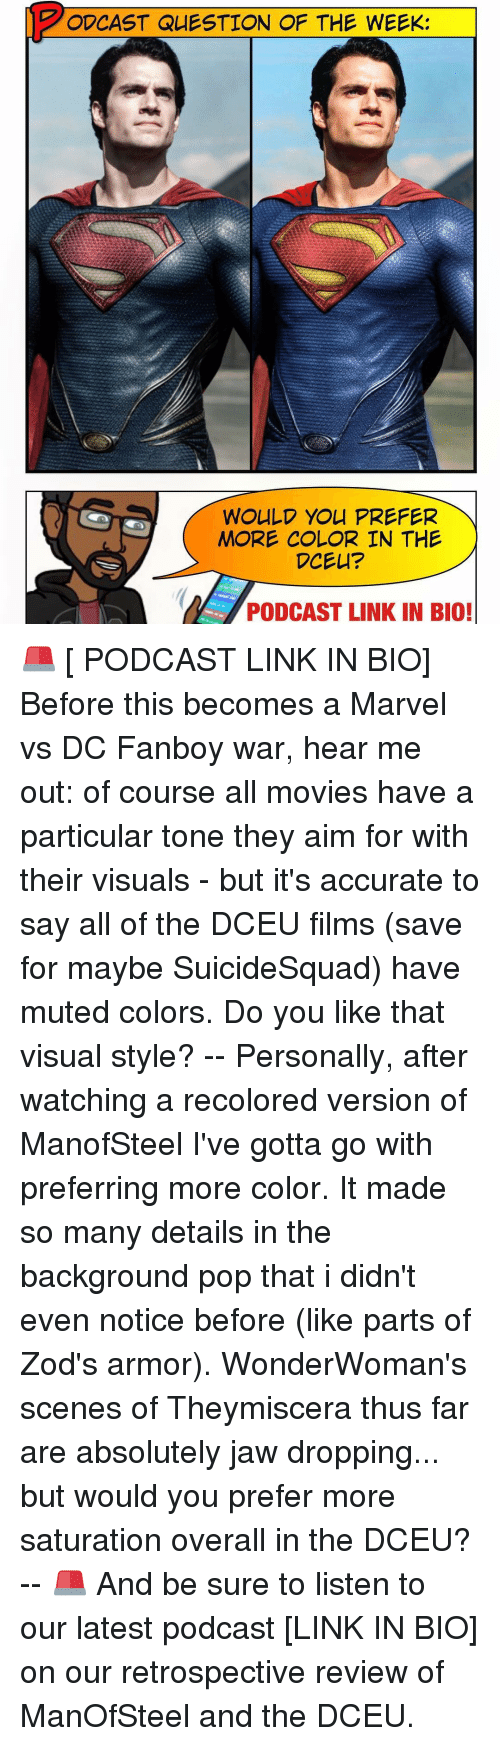 Jaw Dropped: O CAST QUESTION OF THE WEEK:  WOULD YOU PREFER  MORE COLOR IN THE  DCEU?  PODCAST LINK IN BIO! 🚨 [ PODCAST LINK IN BIO] Before this becomes a Marvel vs DC Fanboy war, hear me out: of course all movies have a particular tone they aim for with their visuals - but it's accurate to say all of the DCEU films (save for maybe SuicideSquad) have muted colors. Do you like that visual style? -- Personally, after watching a recolored version of ManofSteel I've gotta go with preferring more color. It made so many details in the background pop that i didn't even notice before (like parts of Zod's armor). WonderWoman's scenes of Theymiscera thus far are absolutely jaw dropping... but would you prefer more saturation overall in the DCEU? -- 🚨 And be sure to listen to our latest podcast [LINK IN BIO] on our retrospective review of ManOfSteel and the DCEU.